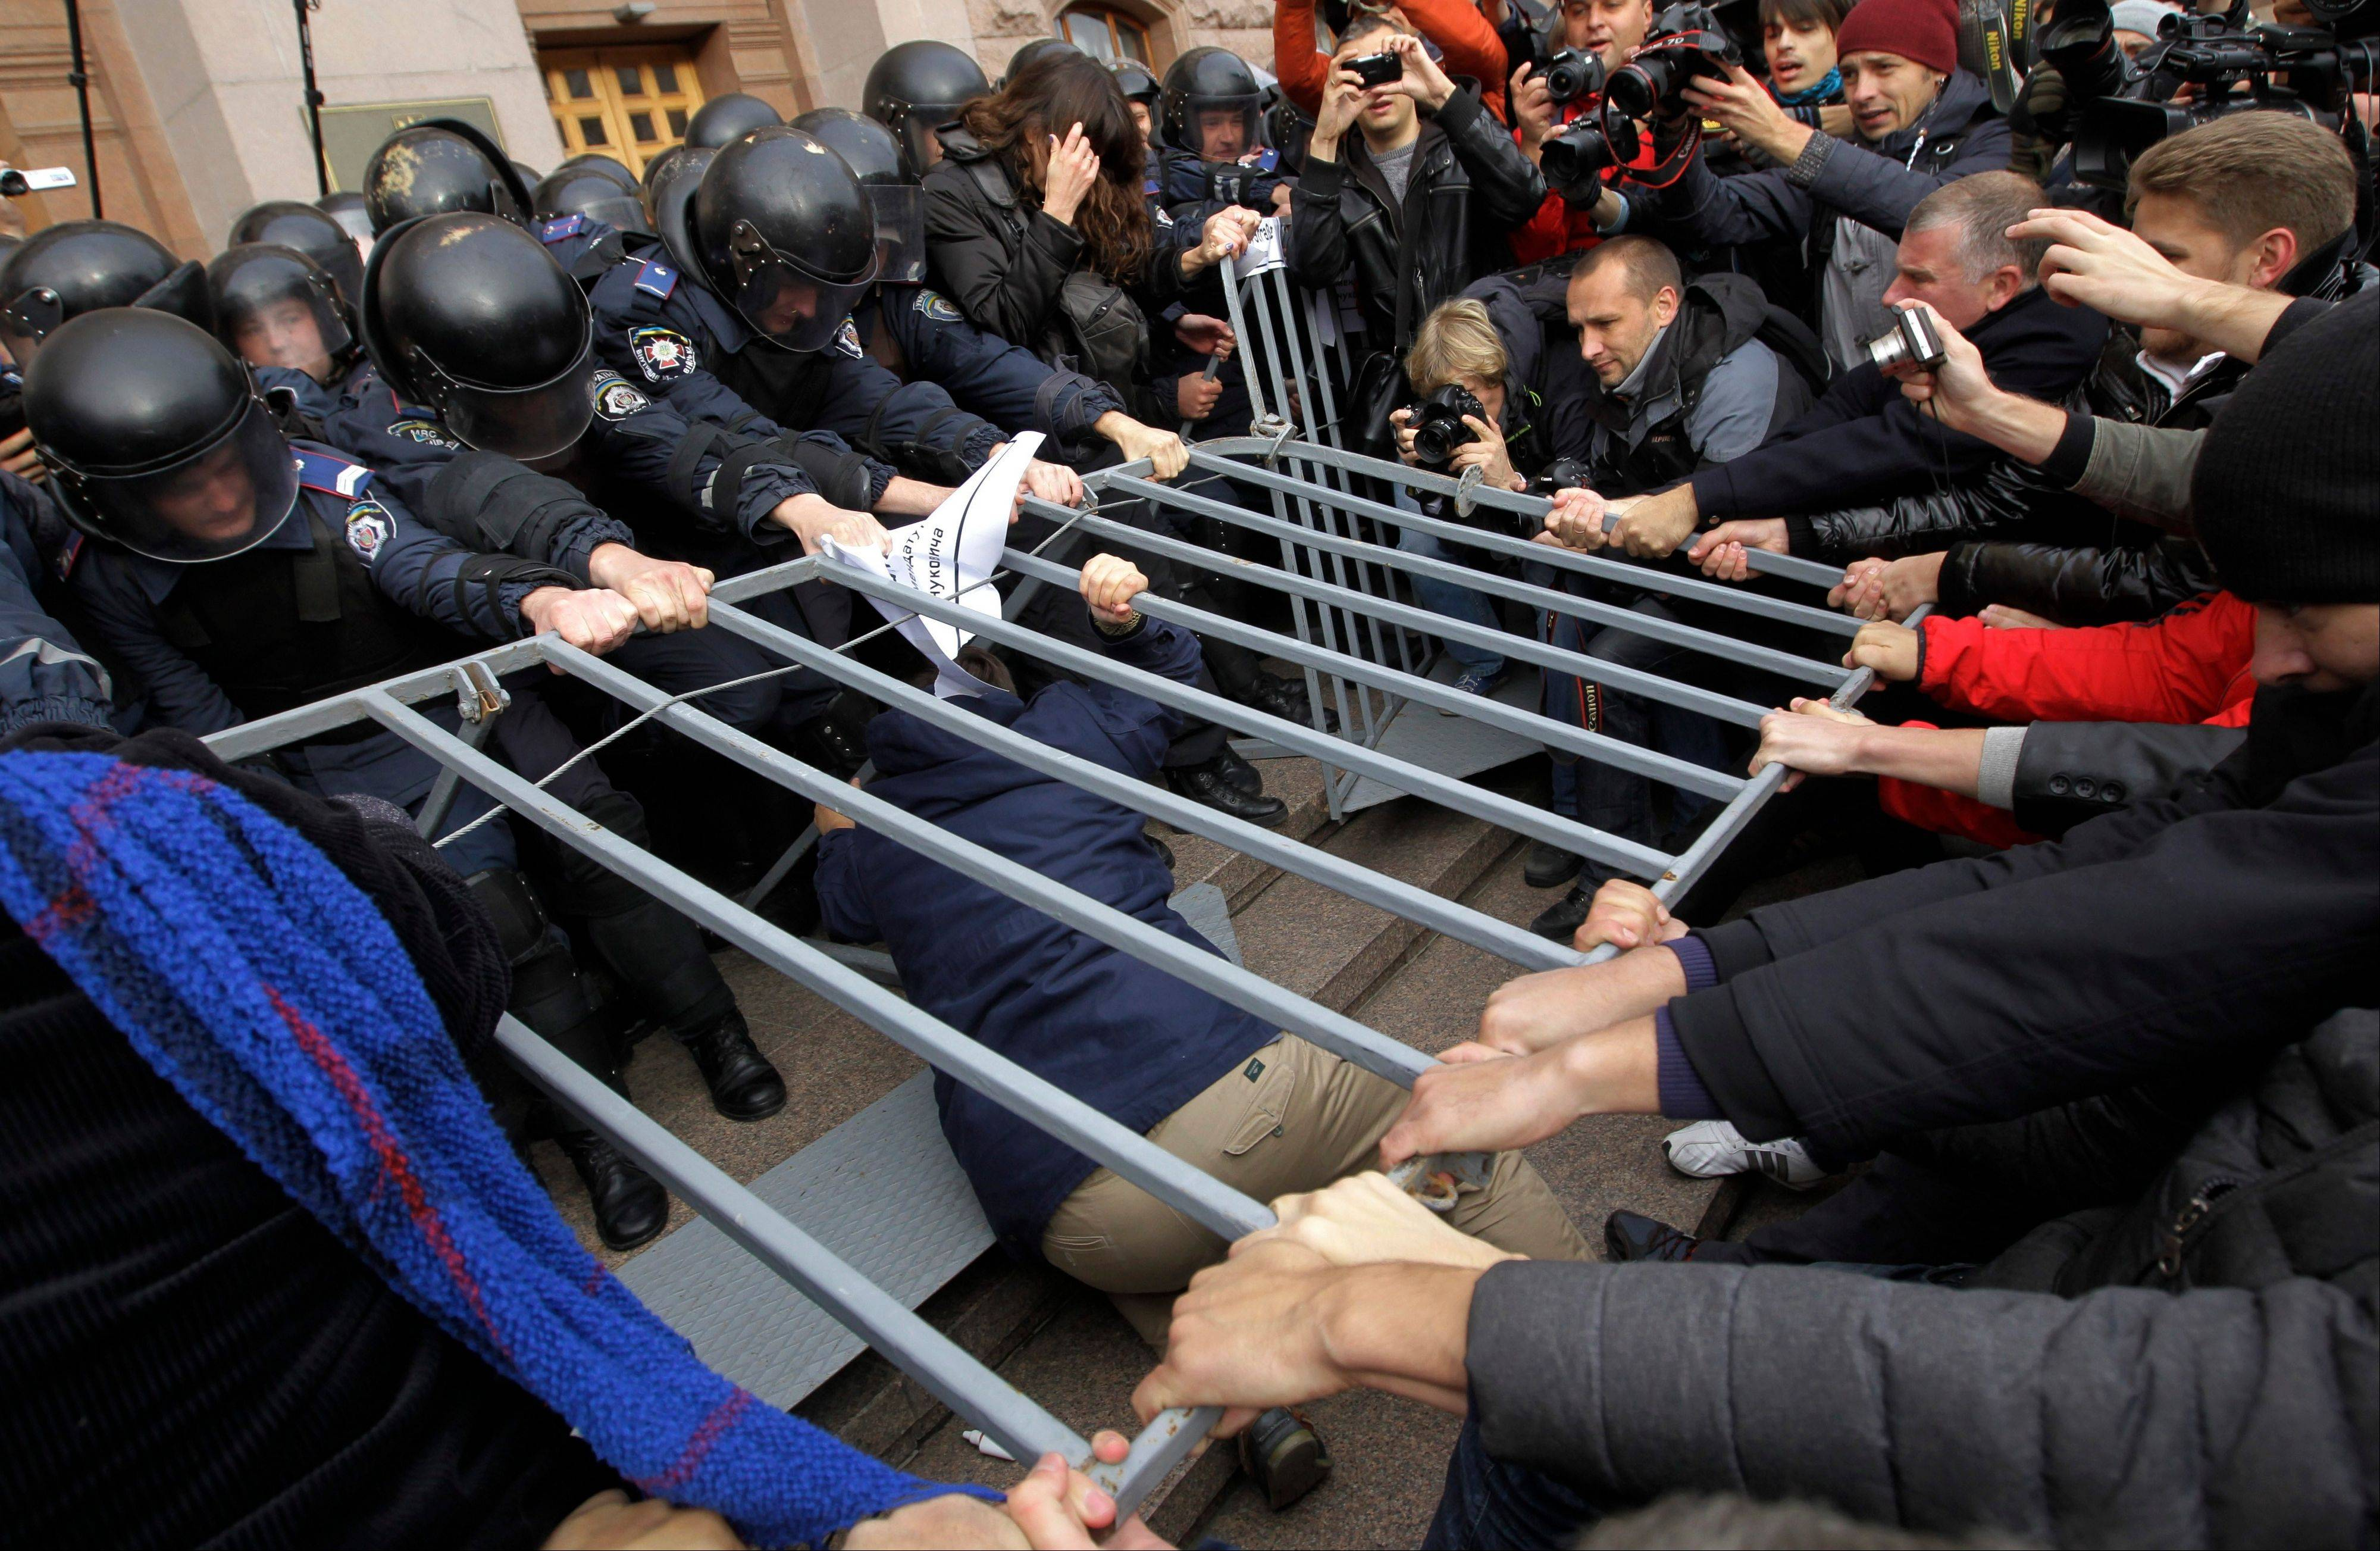 Opposition activists tussle with riot police outside the Kiev city council building during a protest rally demanding a re-election of the city council.